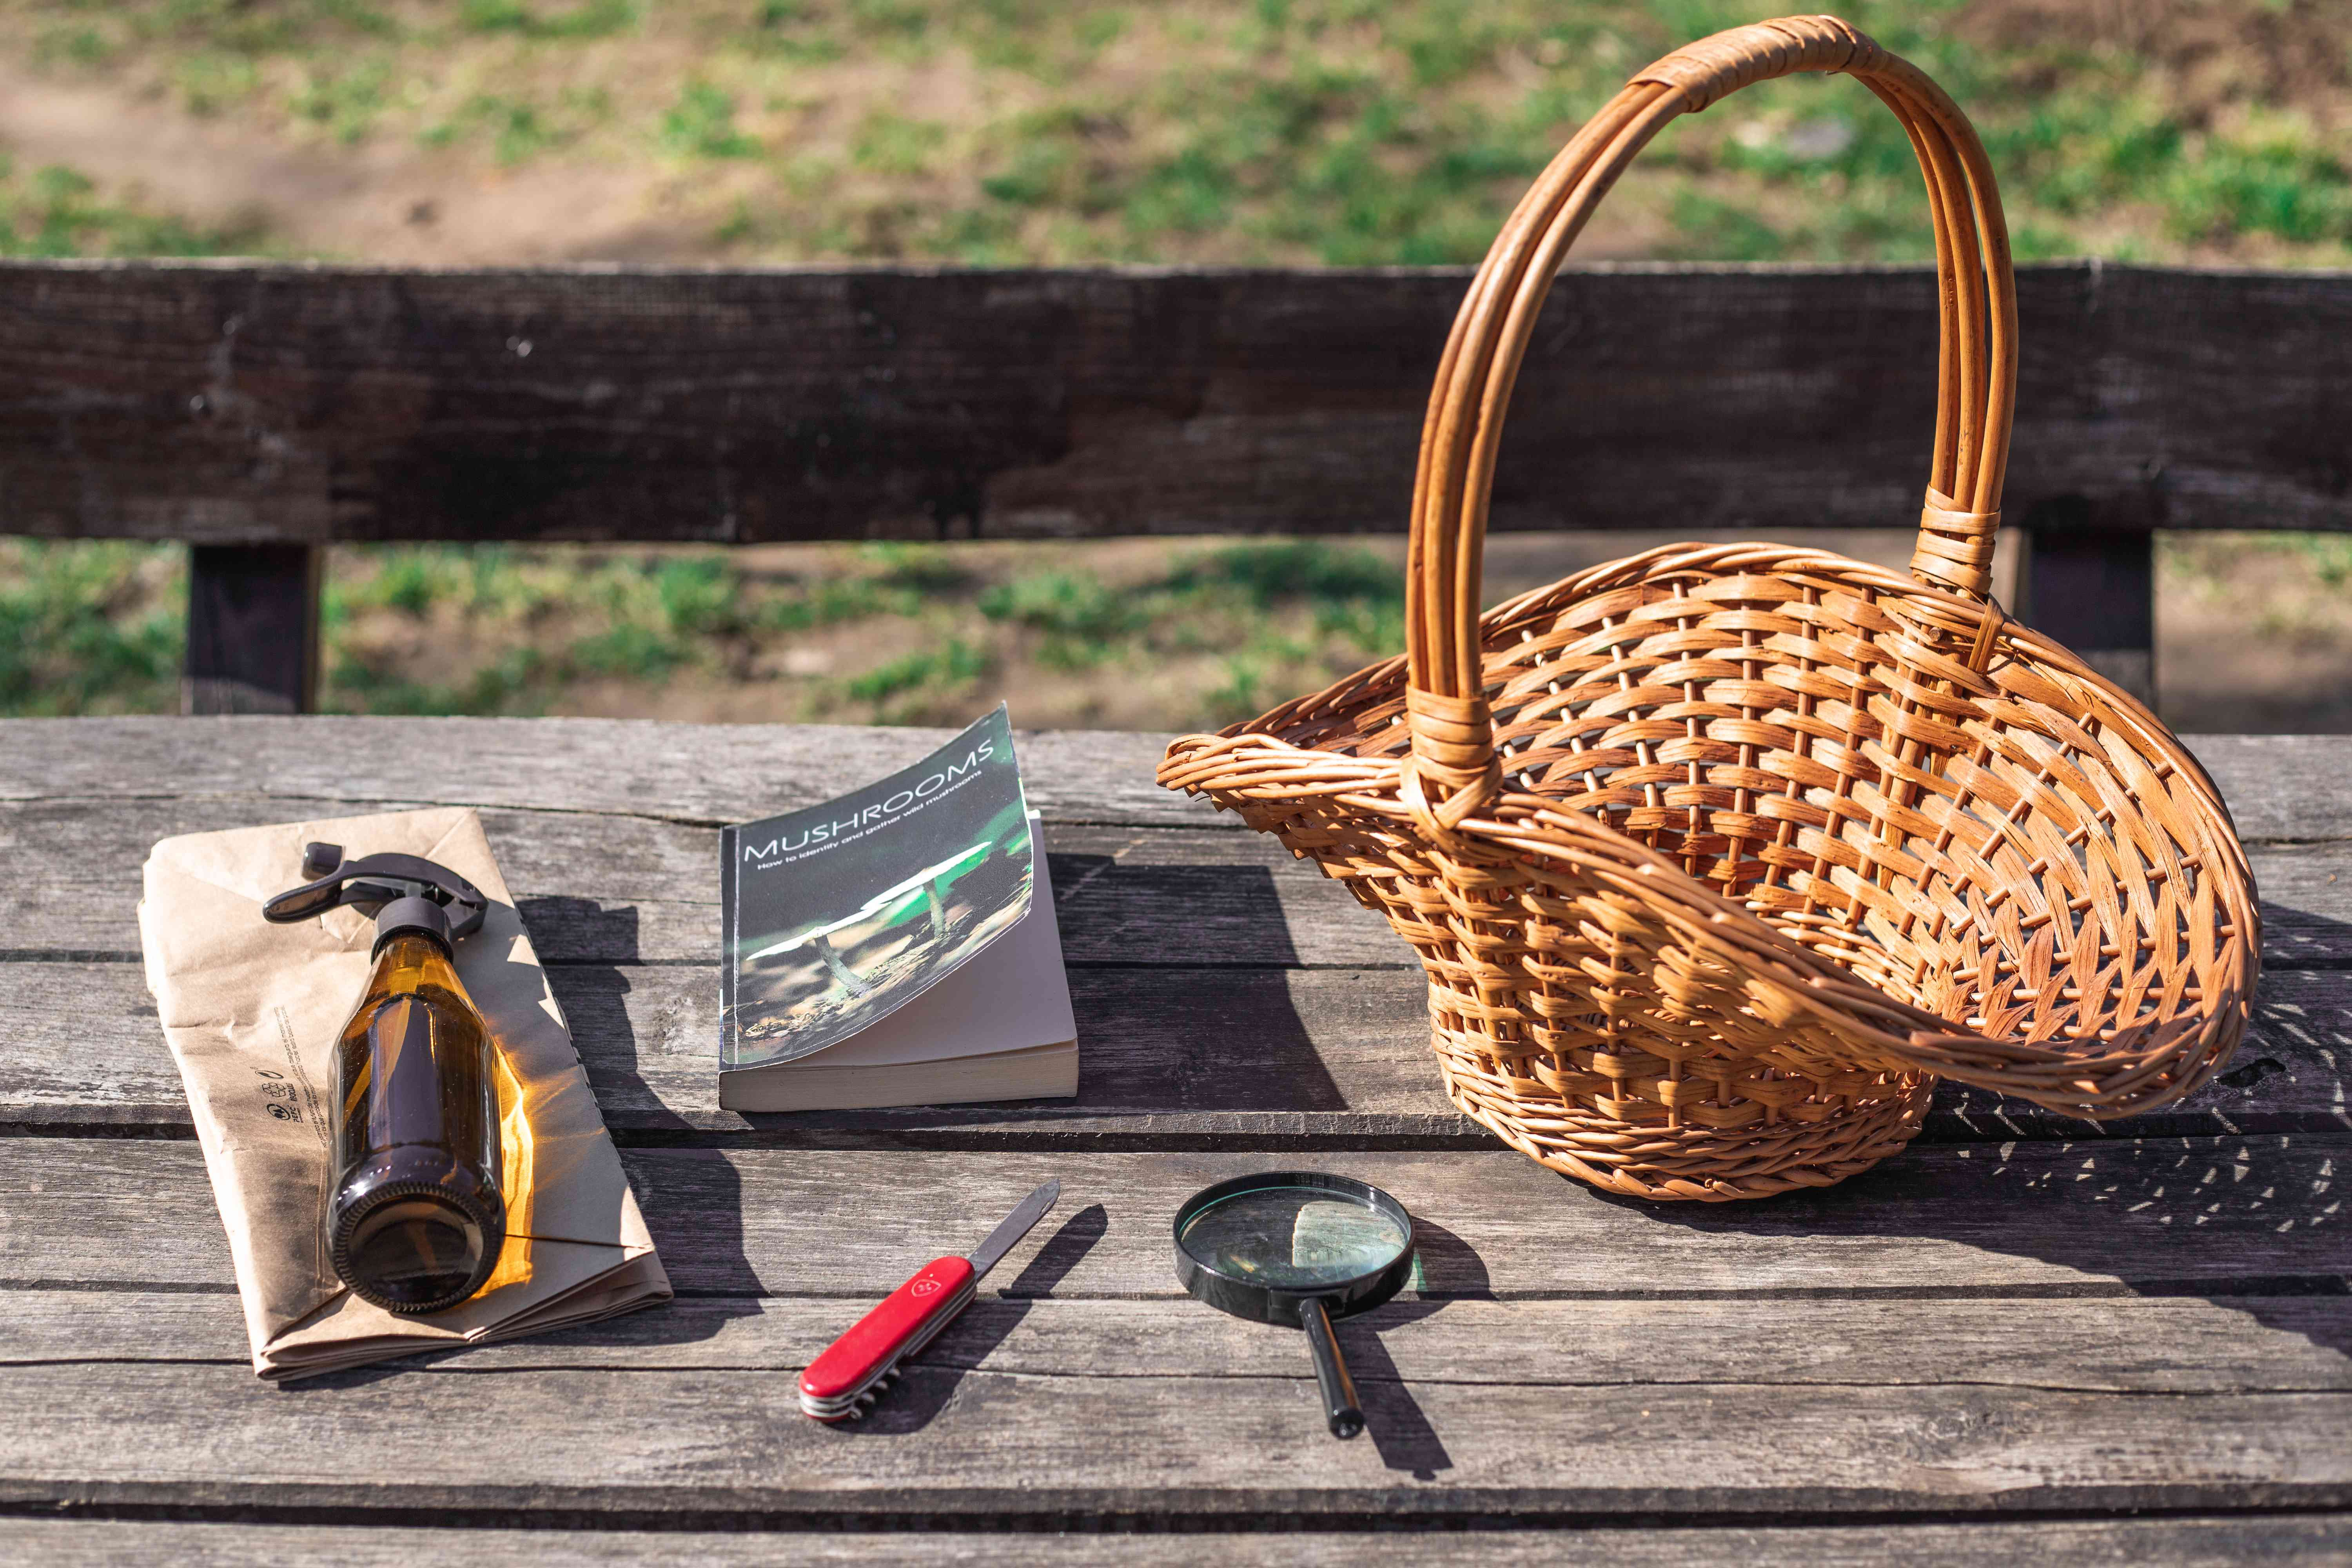 various mushroom walk tools including a basket book knife and magnifying glass